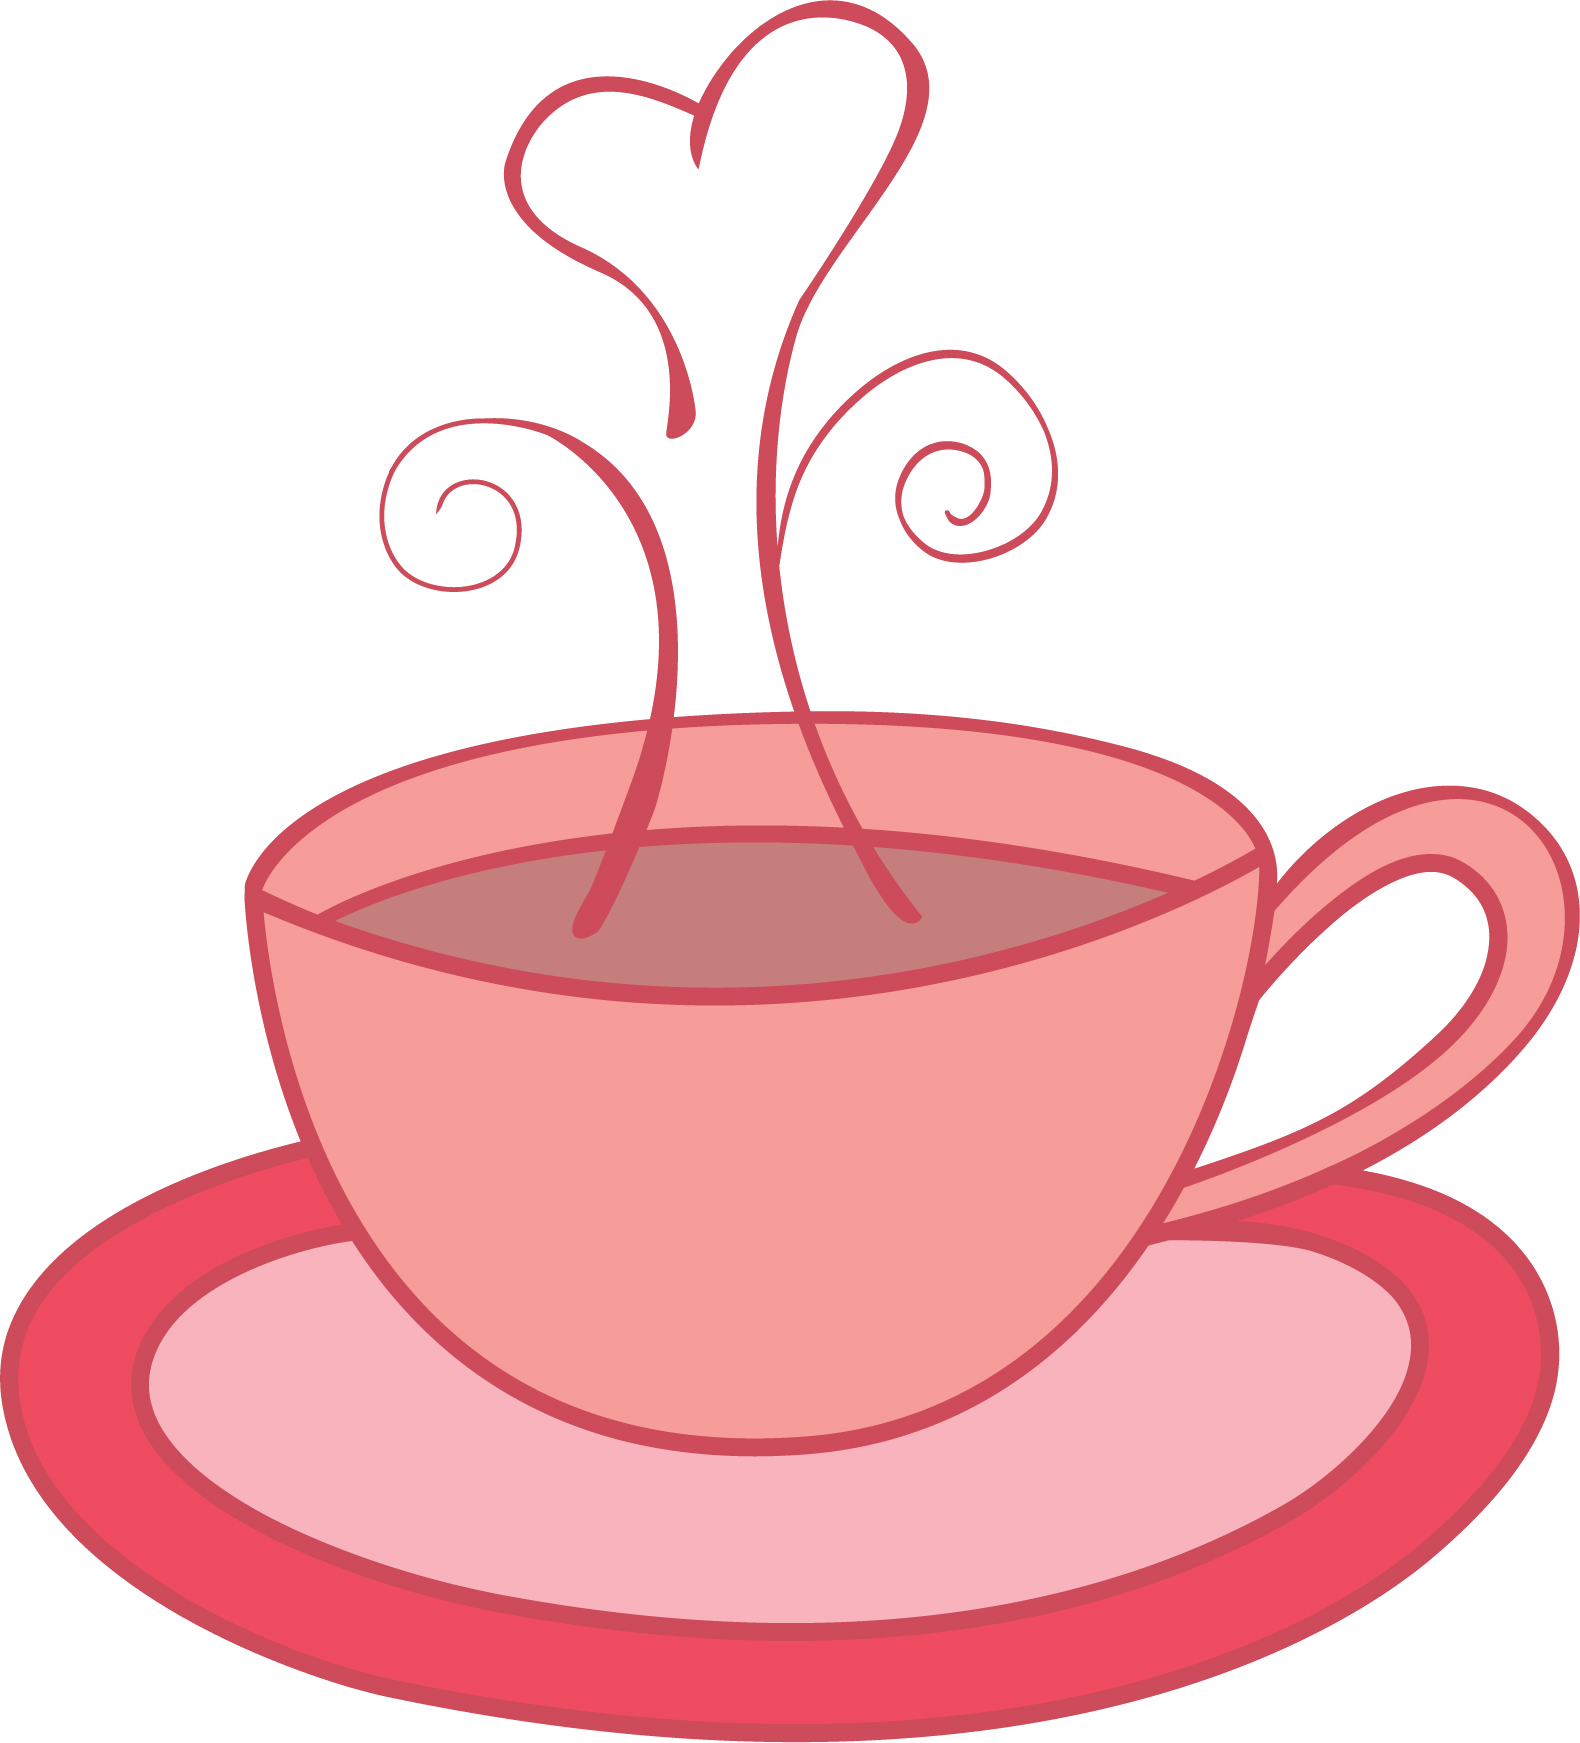 Tea cup with flowers clipart jpg free download Free Teacup Cliparts, Download Free Clip Art, Free Clip Art on ... jpg free download